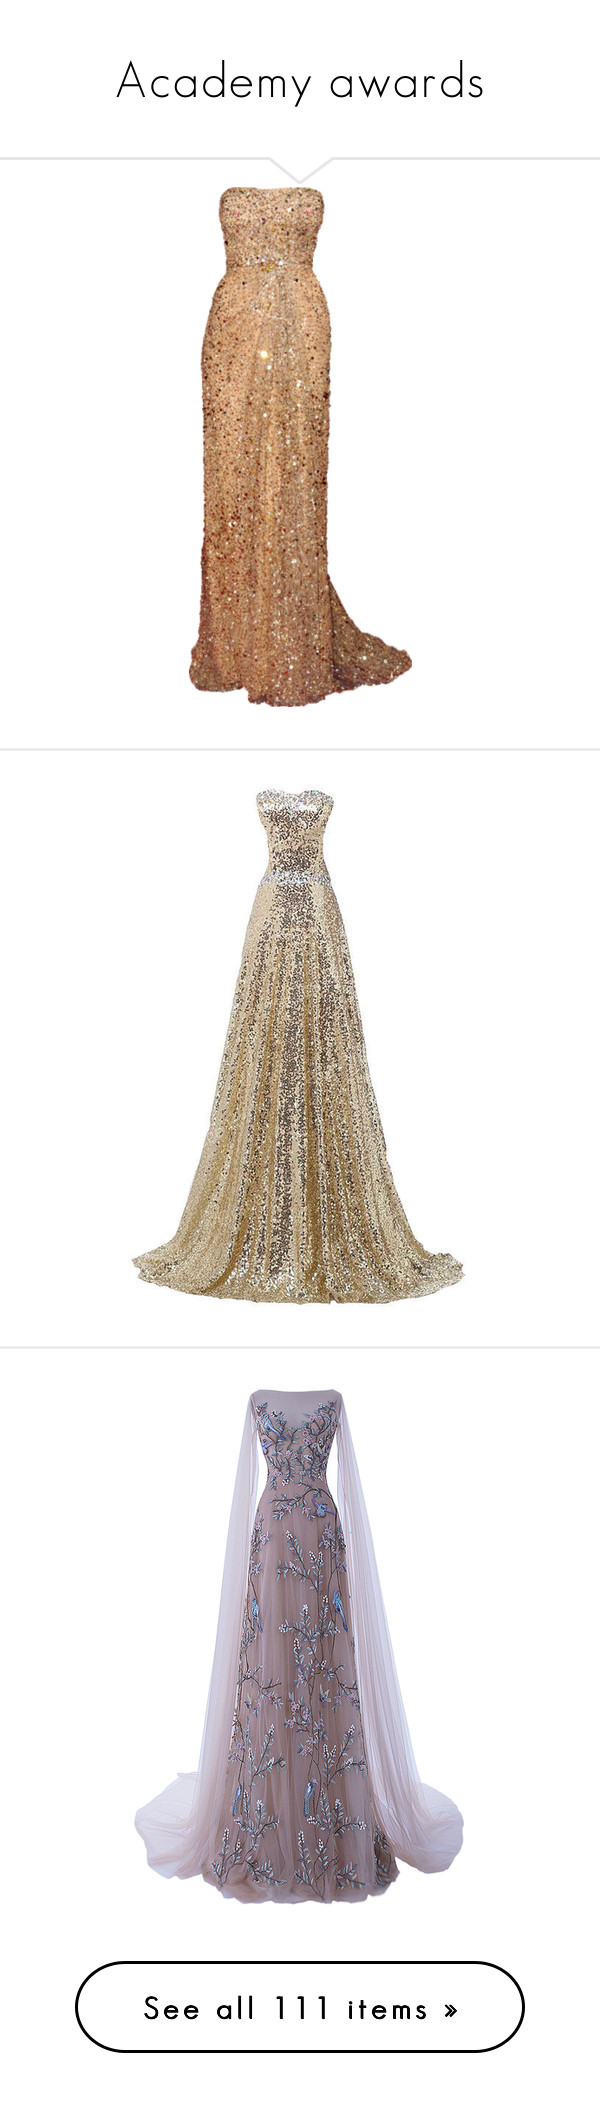 """""""Academy awards"""" by dalya-b ❤ liked on Polyvore featuring dresses, gowns, vestidos, long dresses, beige dress, beige gown, reem acra, reem acra dresses, long dress and sheer evening gown"""